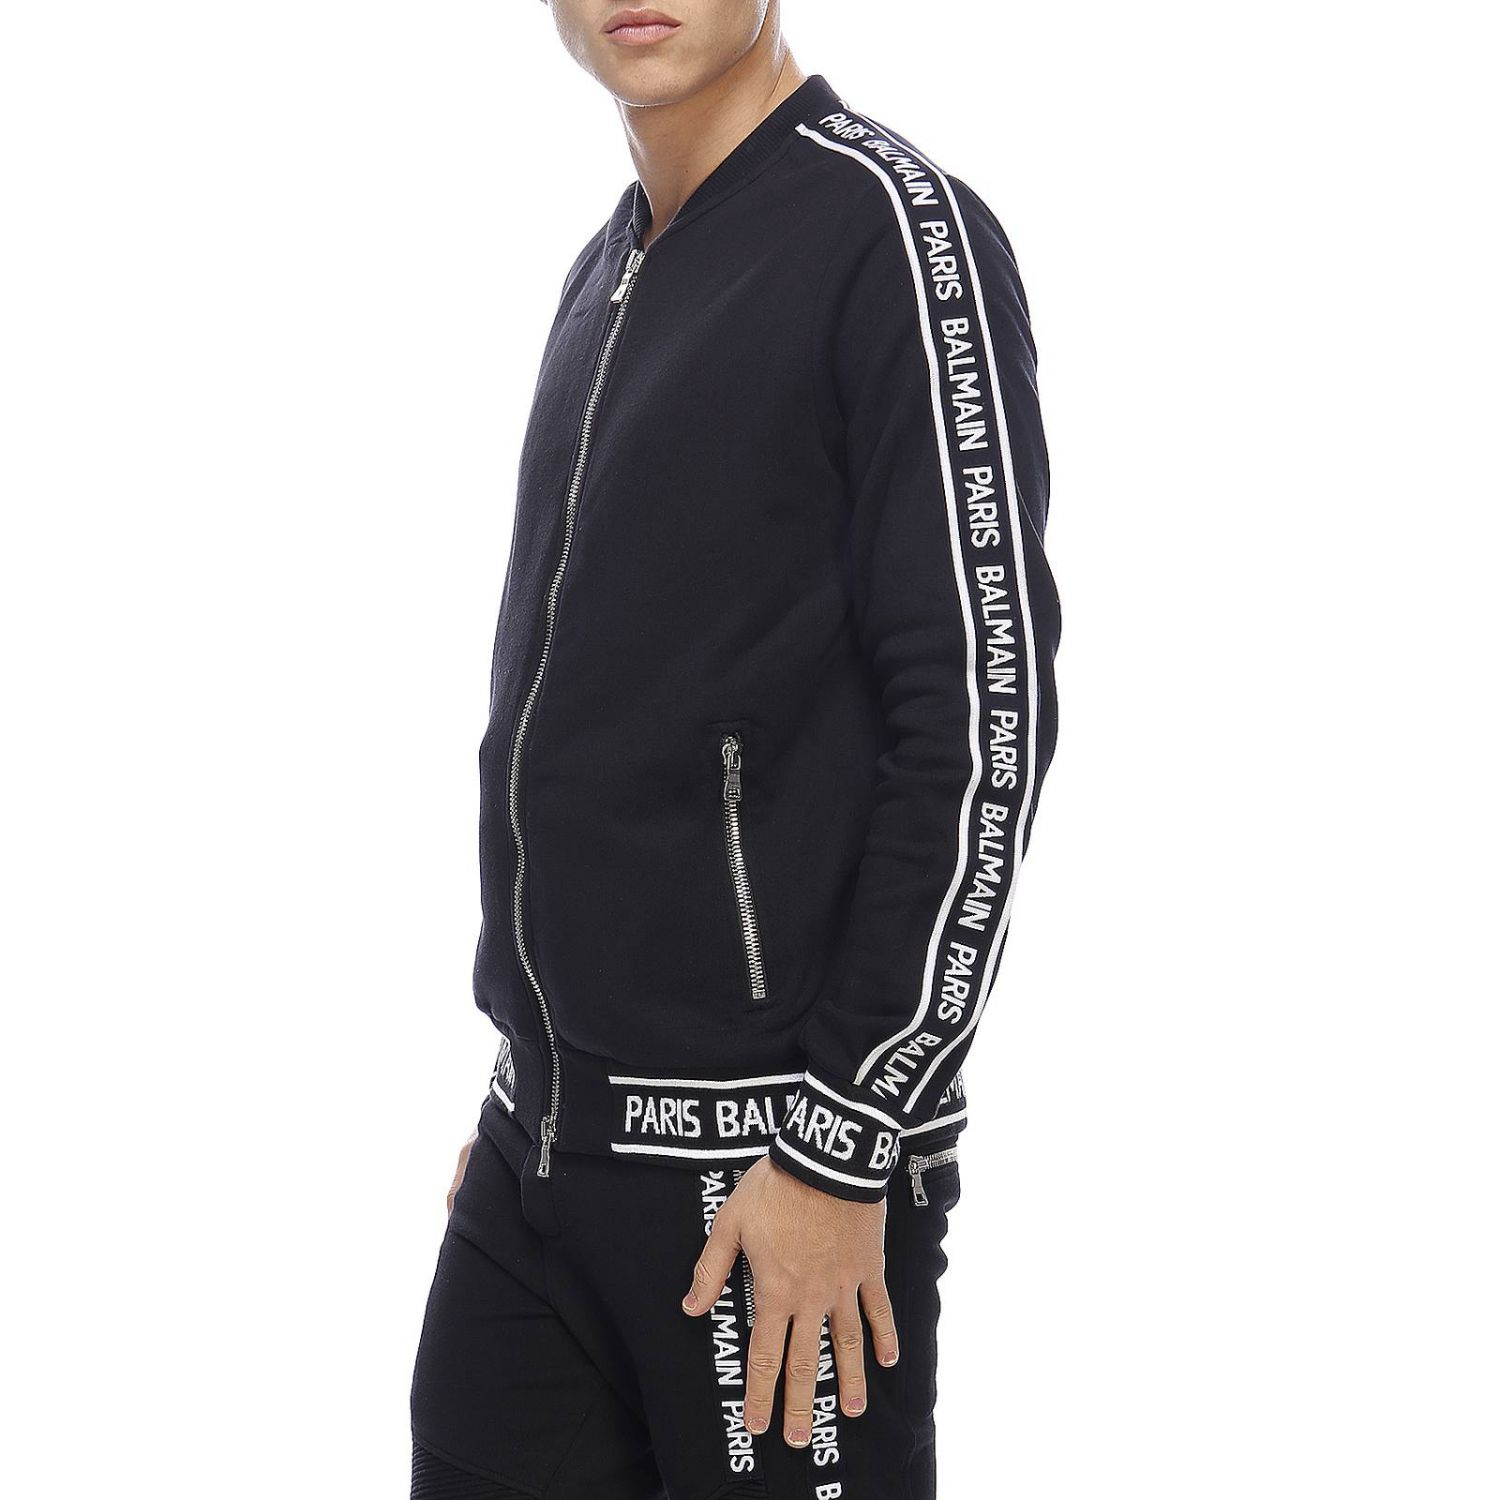 Jacket Balmain: Jacket men Balmain black 2